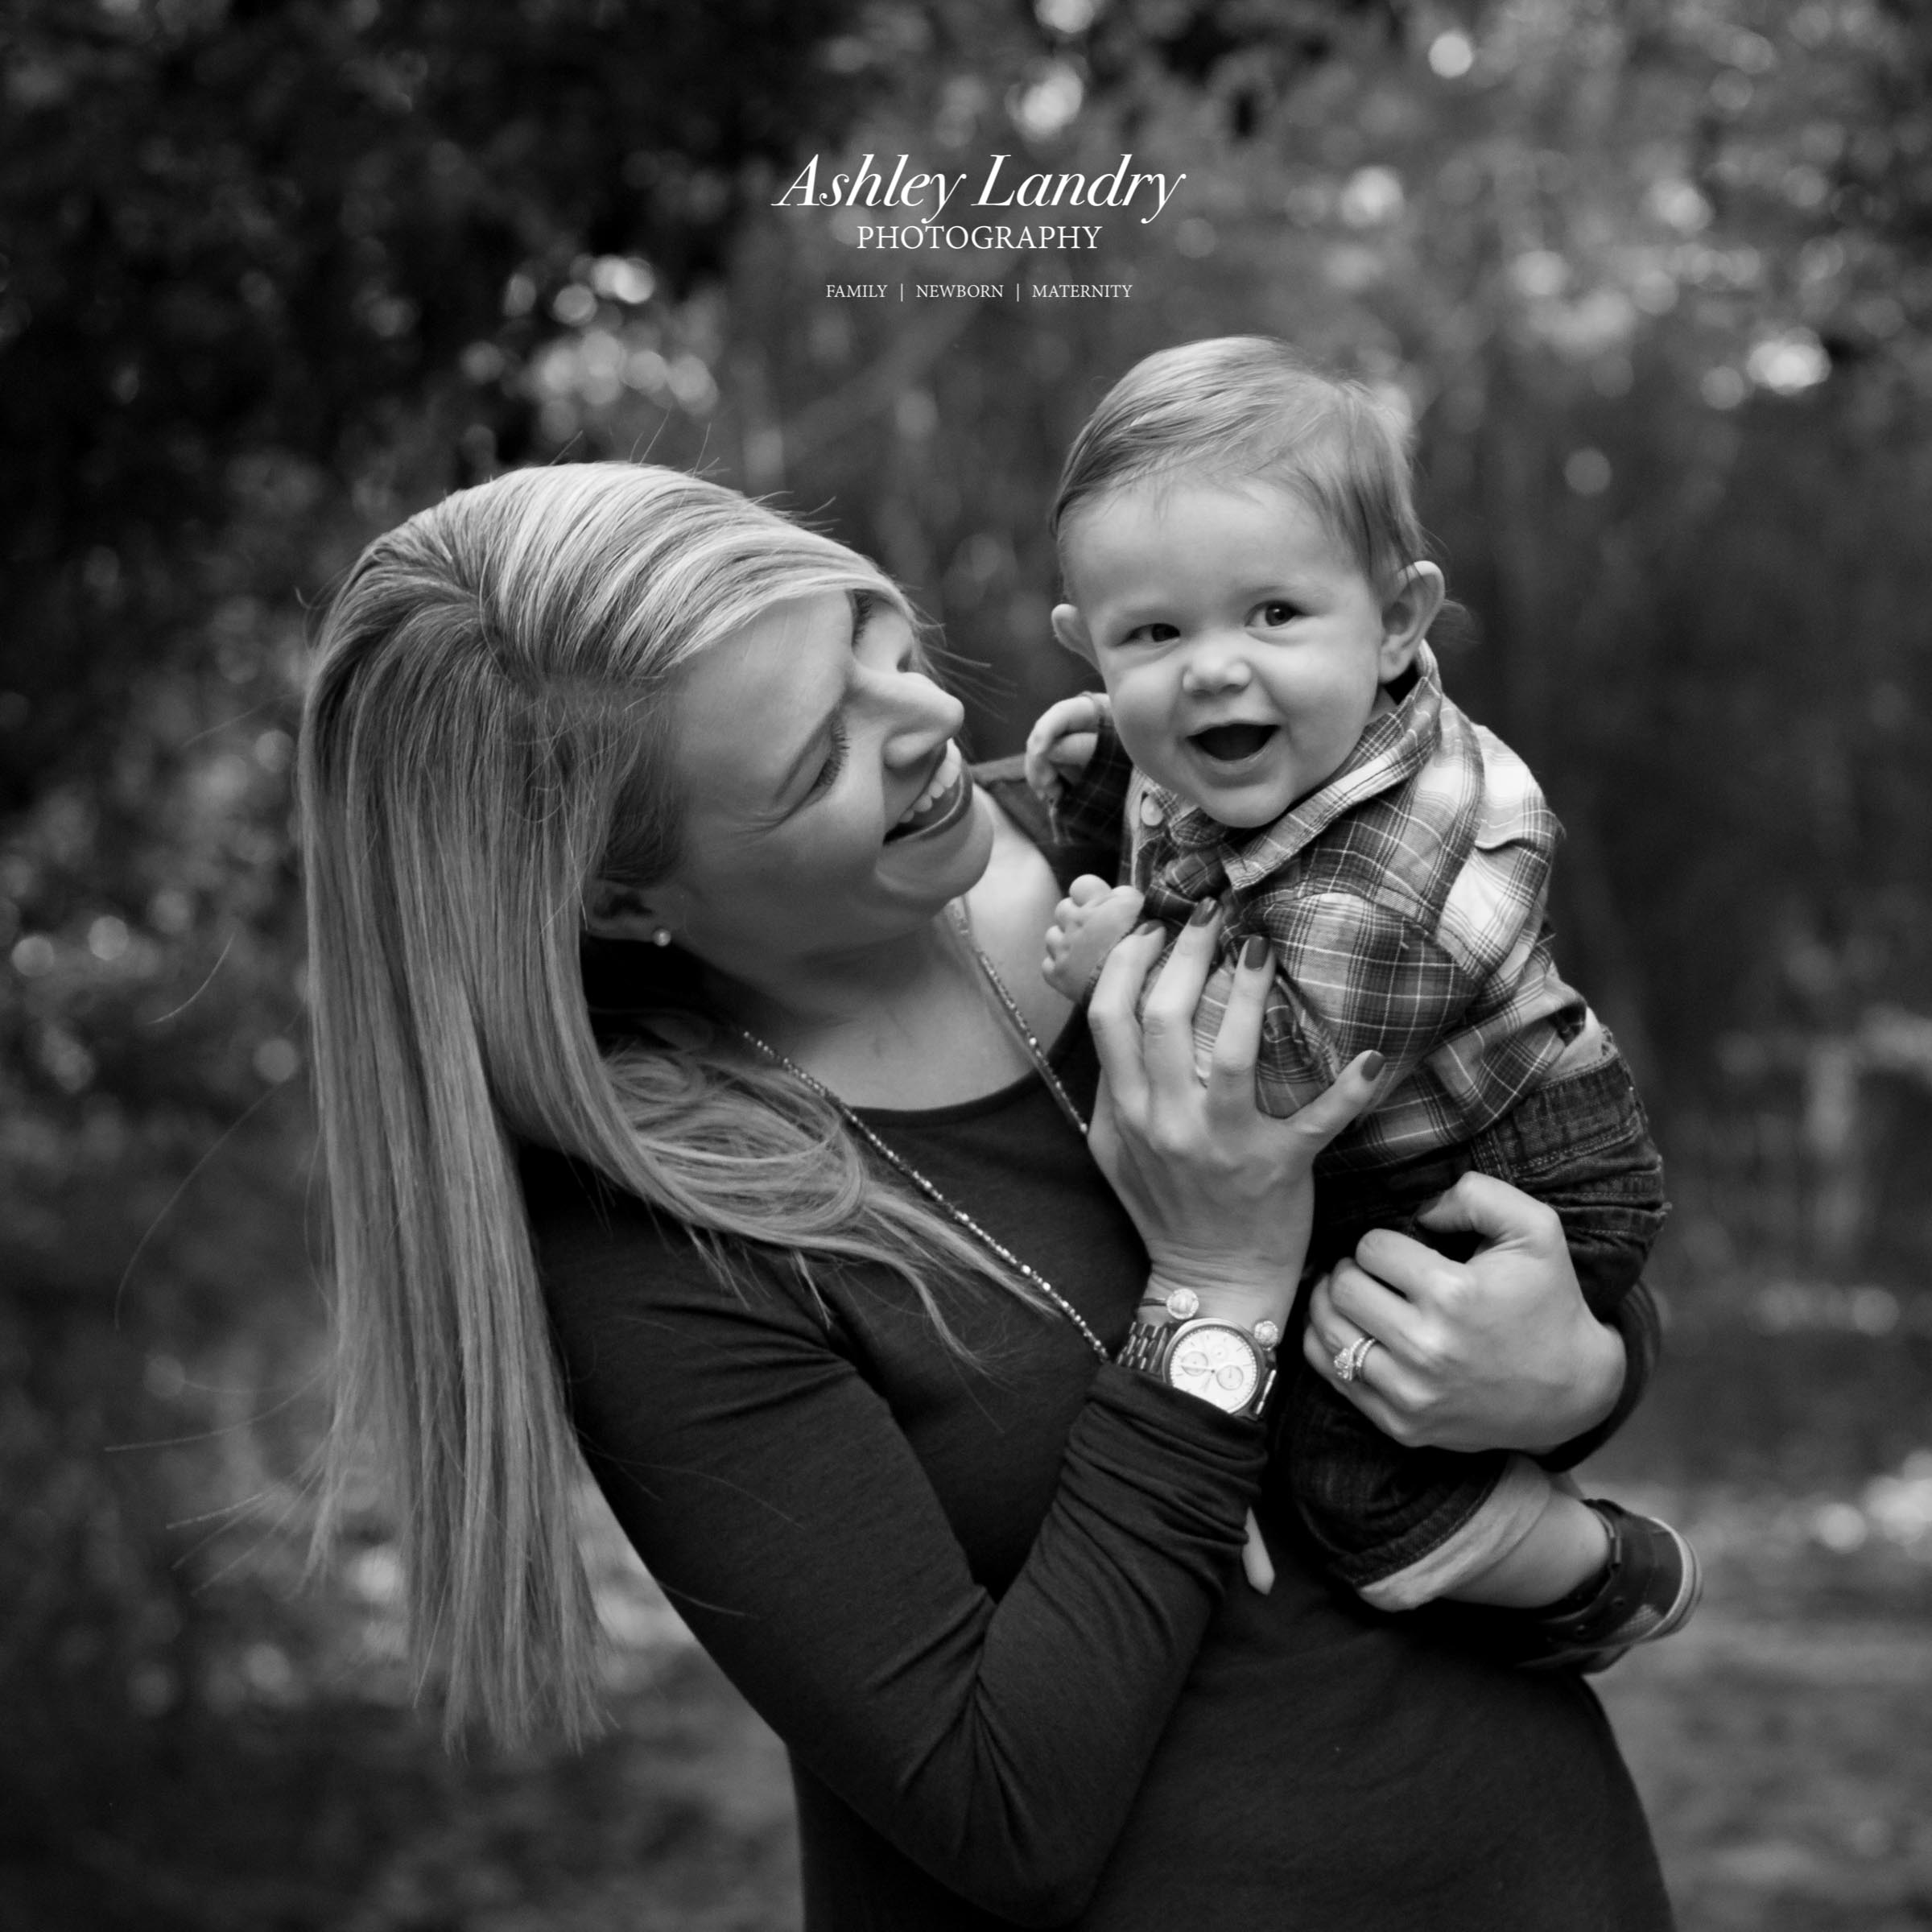 social-media-dec-2016-ashley-landry-photography-11